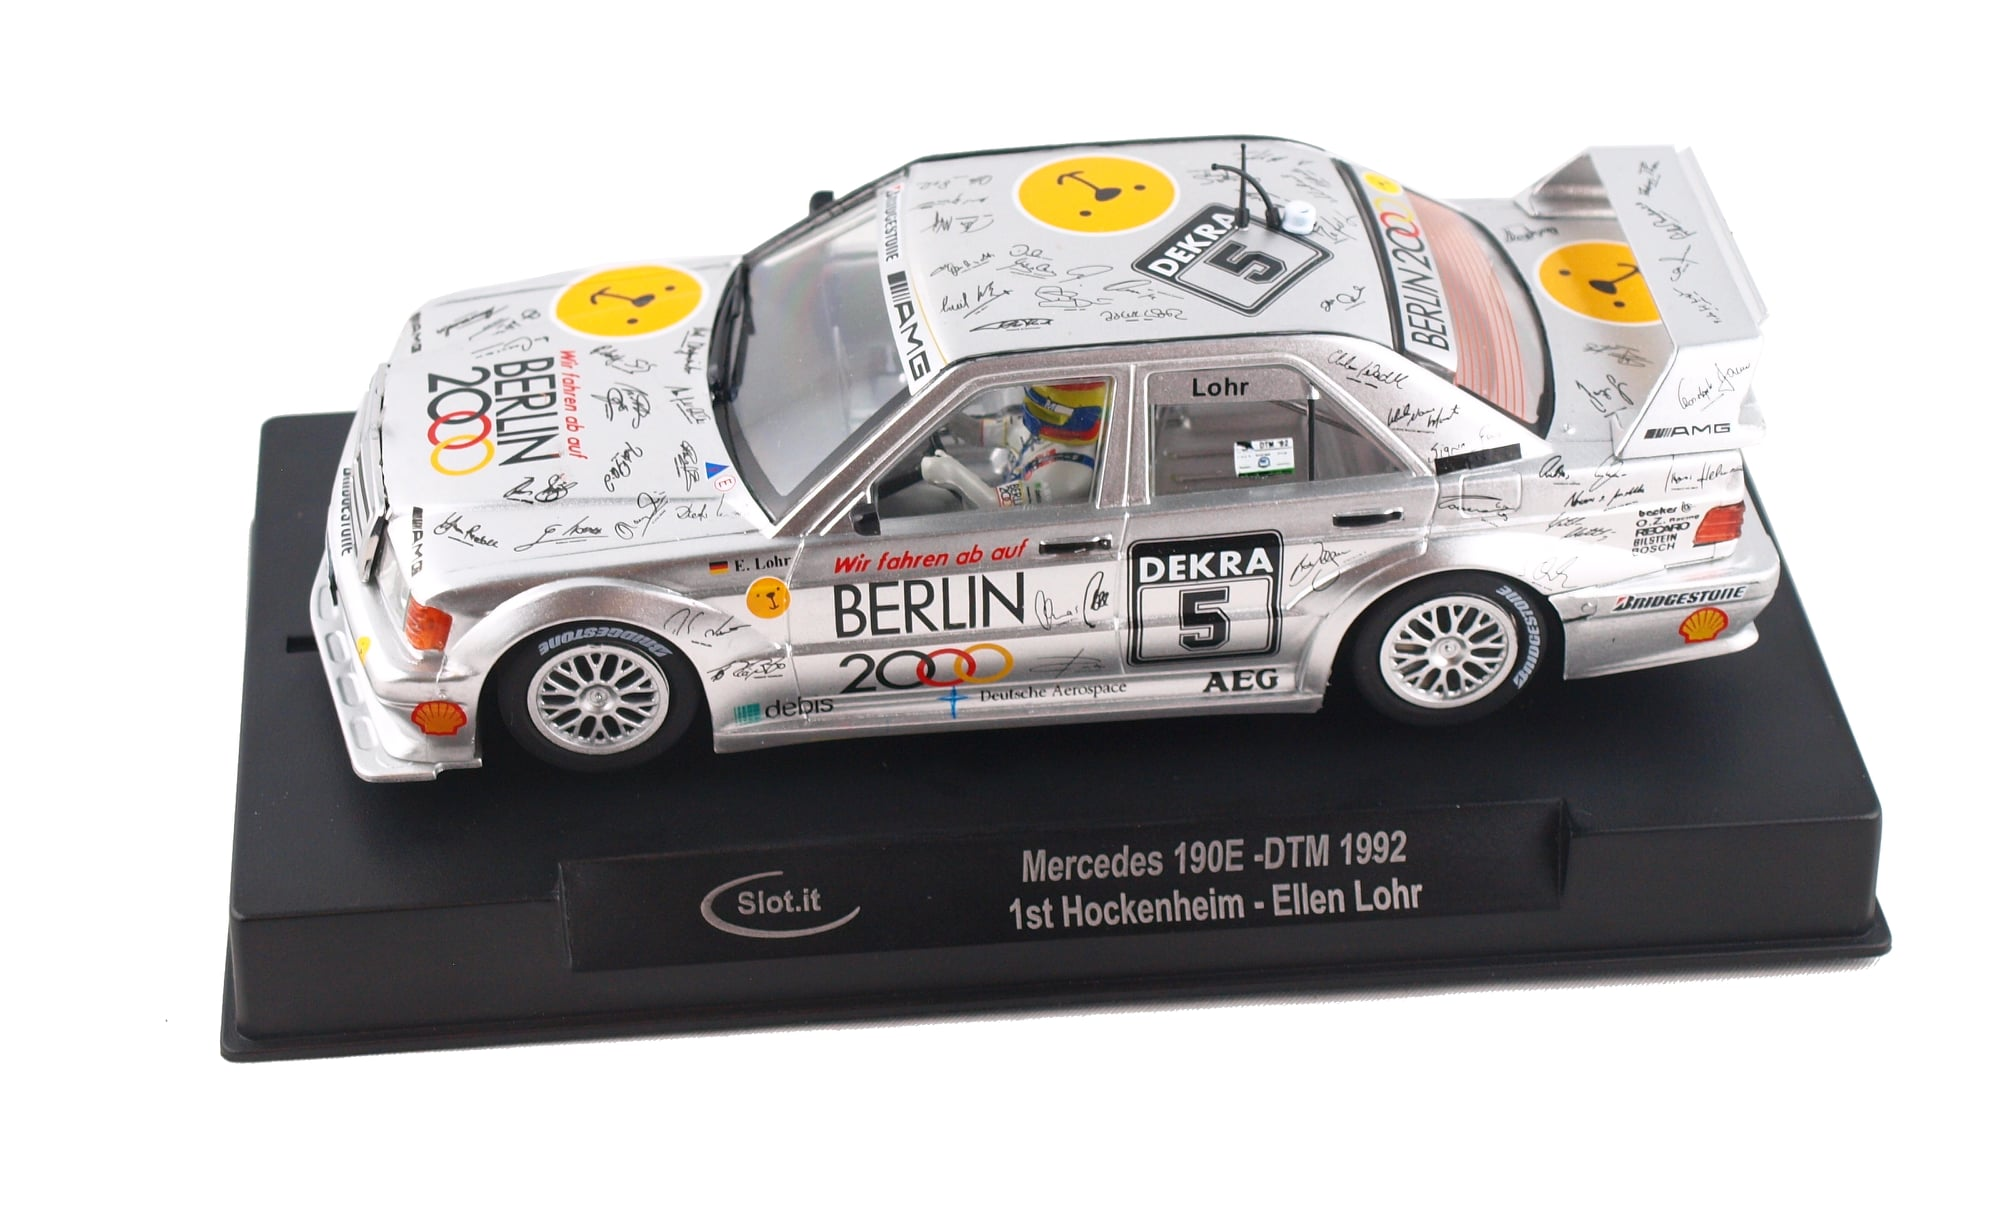 SICA44C Slot.it Mercedes 190E No.6 DTM 1st Hockenheim 1992